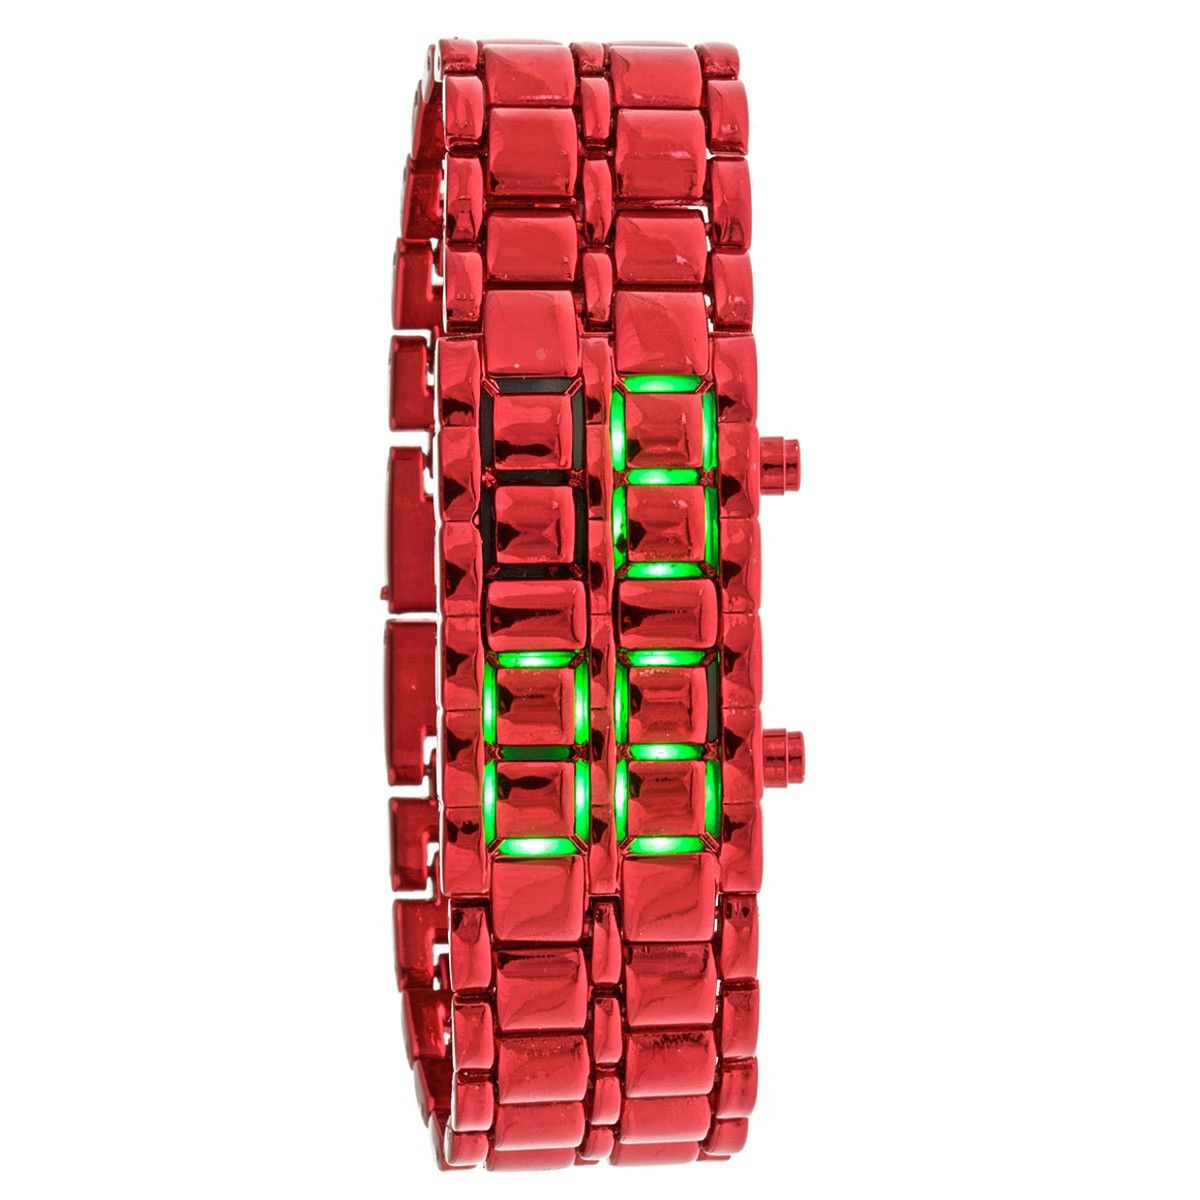 Bar Watch by Crow Watches conceals an intricate LED system that becomes visible at the touch of a button.